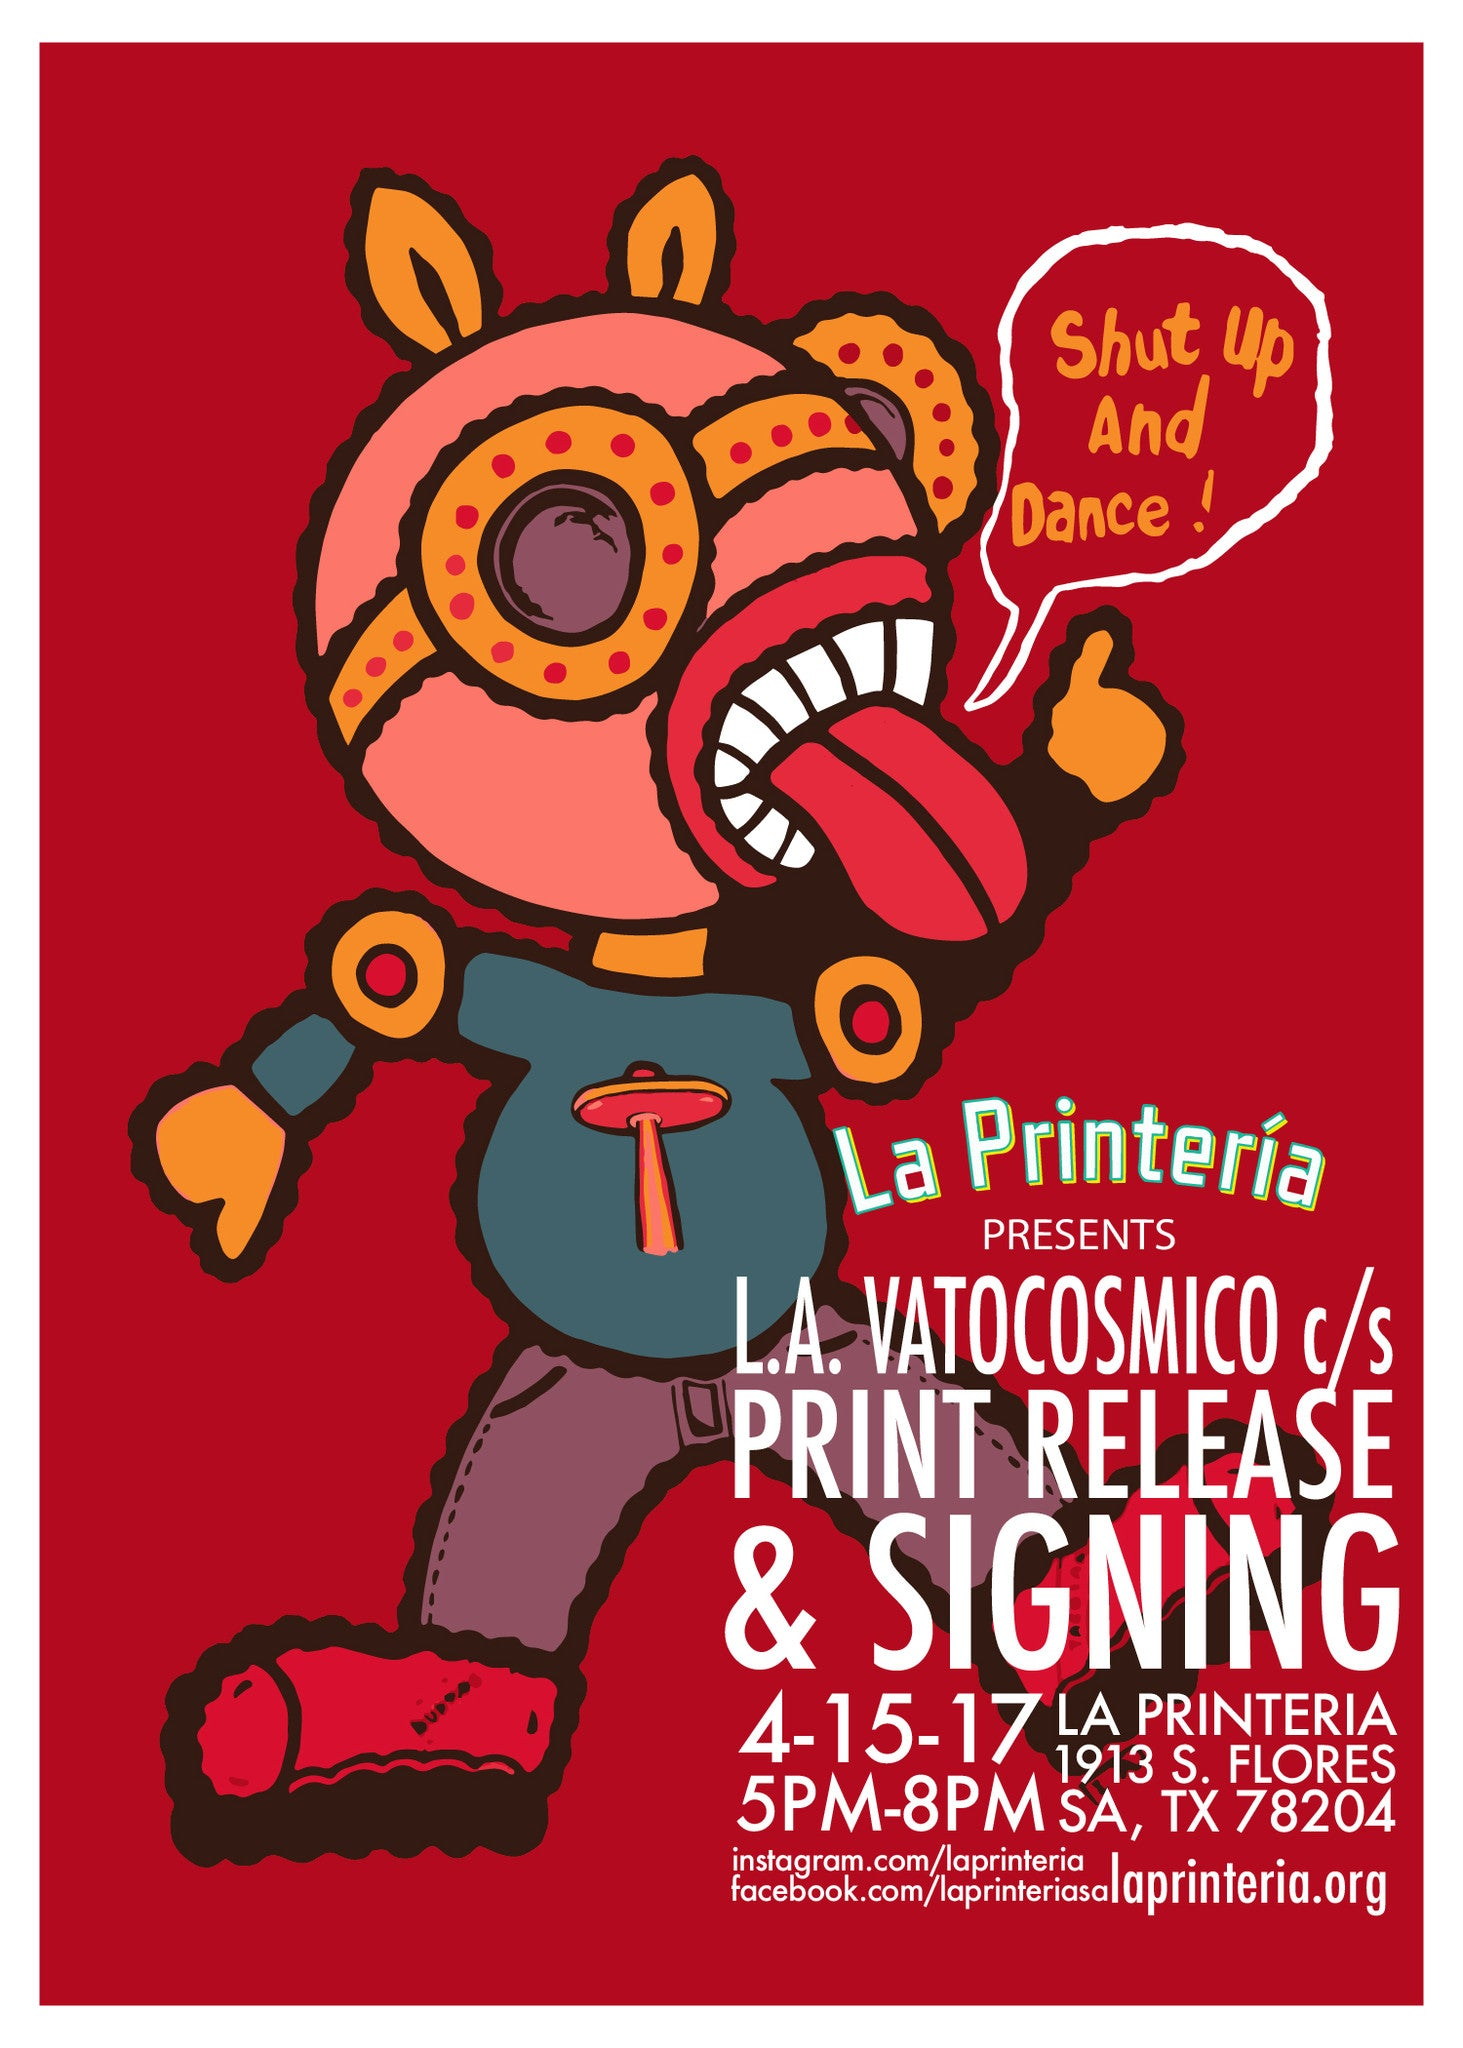 L.A. Vatocosmico Print Release & Signing